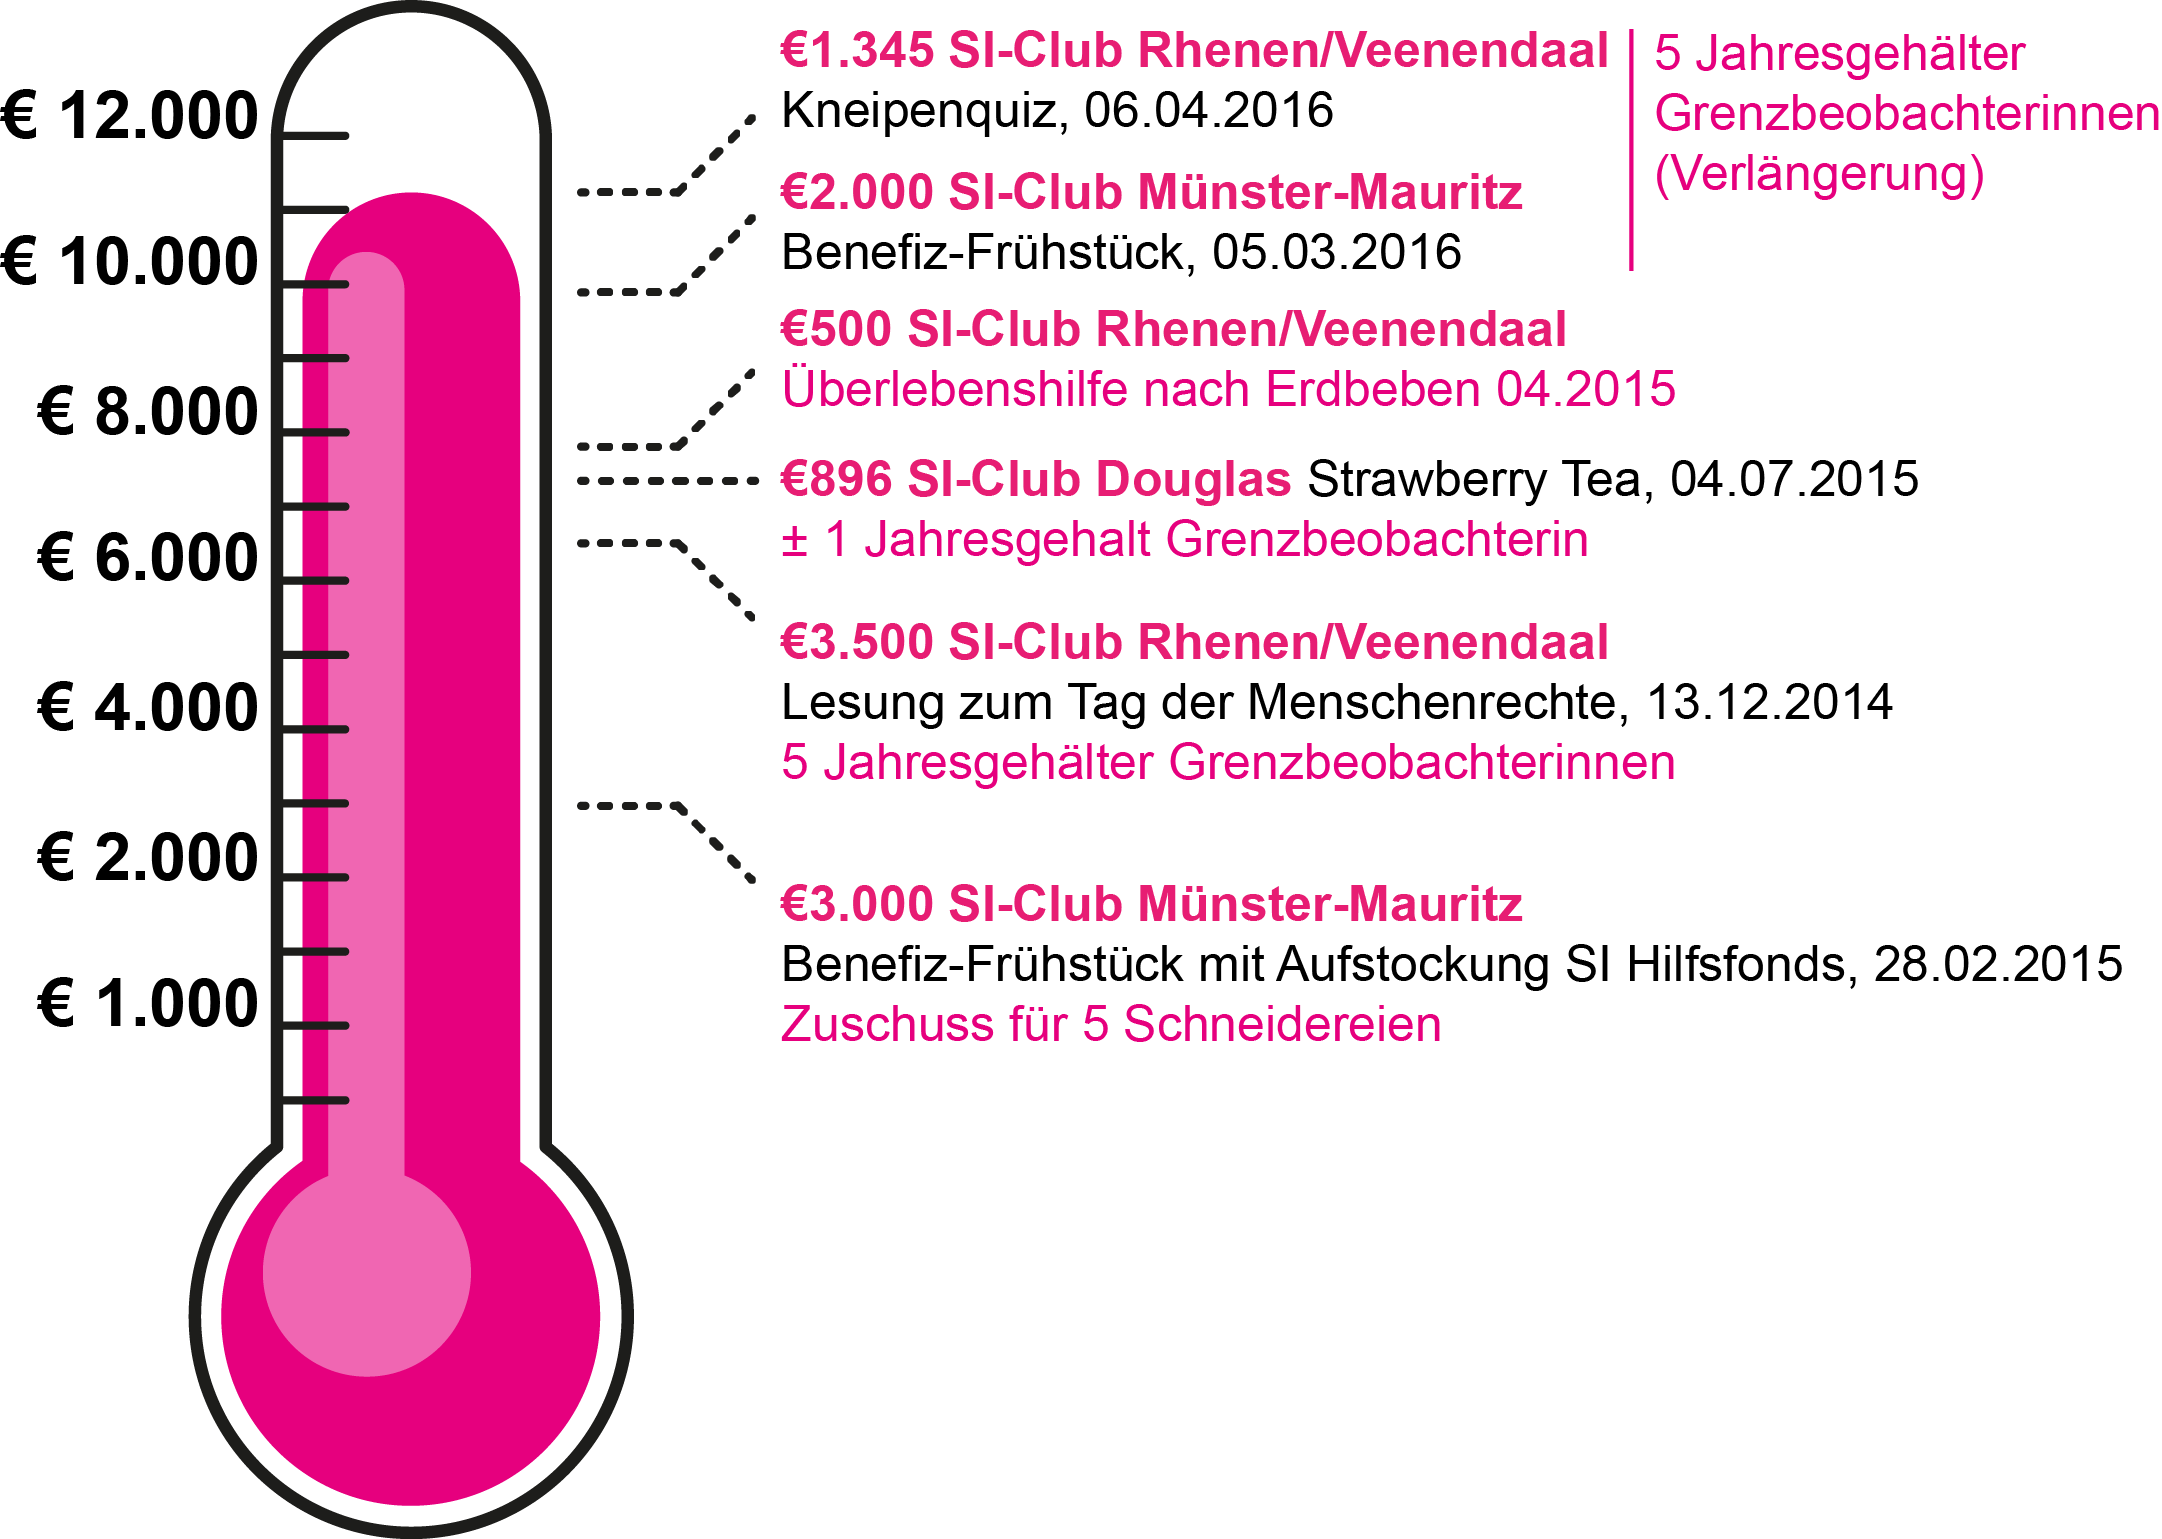 spendenbarometer 20160406 deutsch copy